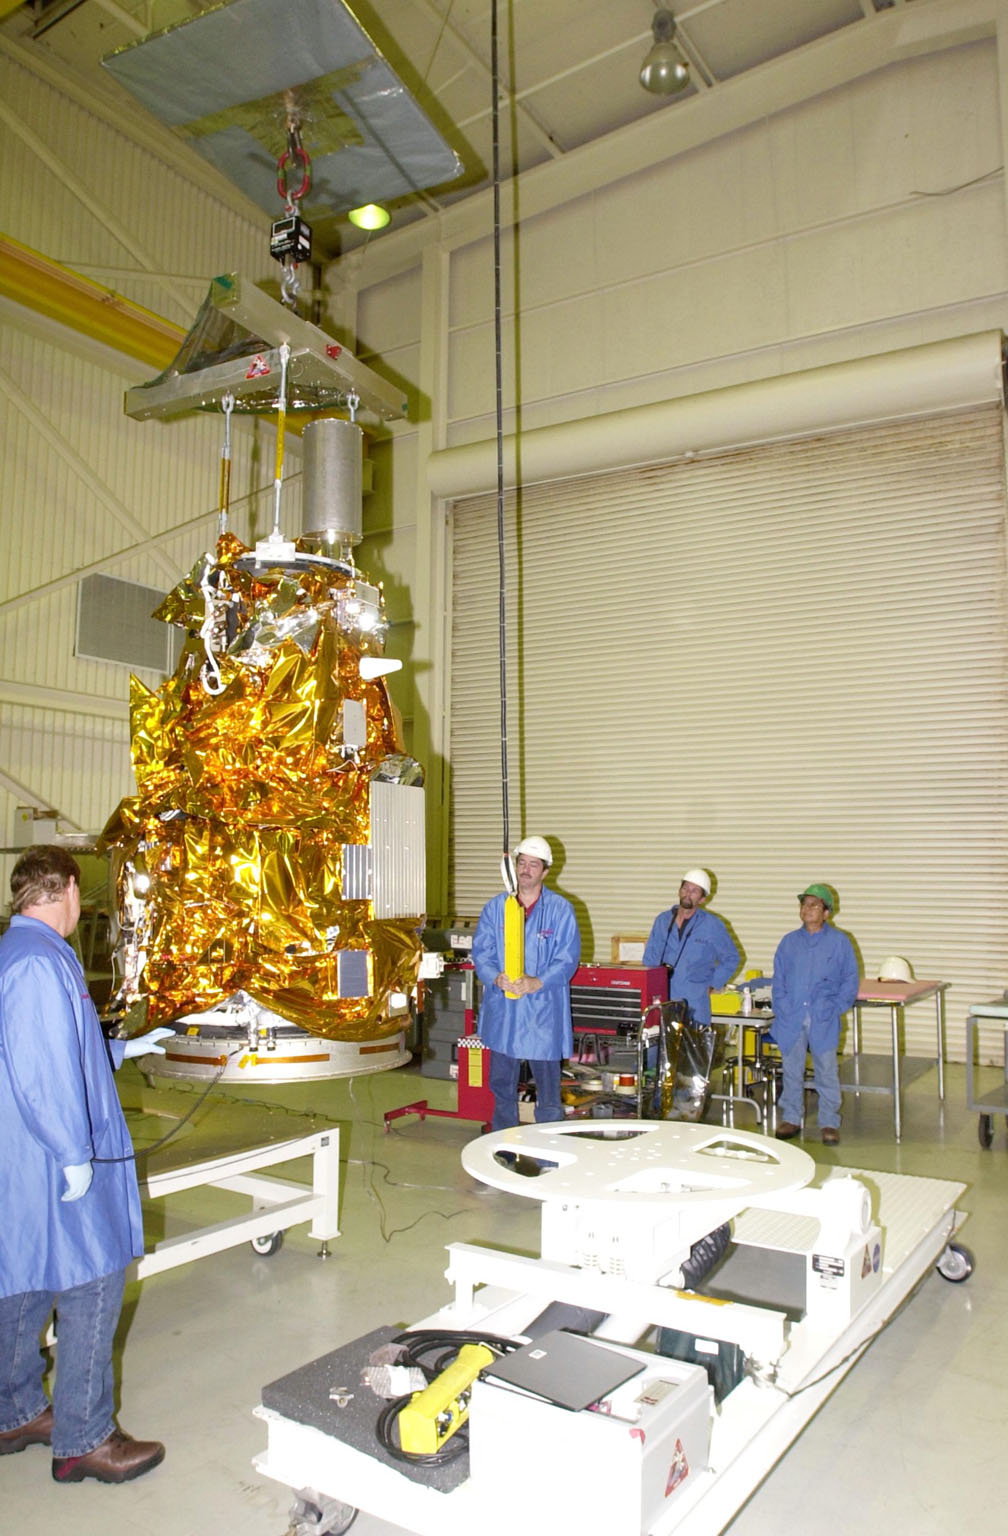 KENNEDY SPACE CENTER, FLA. - At Vandenberg Air Force Base in California, workers stand by while an overhead crane moves the Demonstration of Autonomous Rendezvous Technology (DART) spacecraft onto the mobile stand at right. DART was designed and built for NASA by Orbital Sciences Corporation as an advanced flight demonstrator to locate and maneuver near an orbiting satellite. DART weighs about 800 pounds and is nearly 6 feet long and 3 feet in diameter. The Orbital Sciences Pegasus XL will launch DART into a circular polar orbit of approximately 475 miles. DART is designed to demonstrate technologies required for a spacecraft to locate and rendezvous, or maneuver close to, other craft in space. Results from the DART mission will aid in the development of NASA?s Crew Exploration Vehicle and will also assist in vehicle development for crew transfer and crew rescue capability to and from the International Space Station.